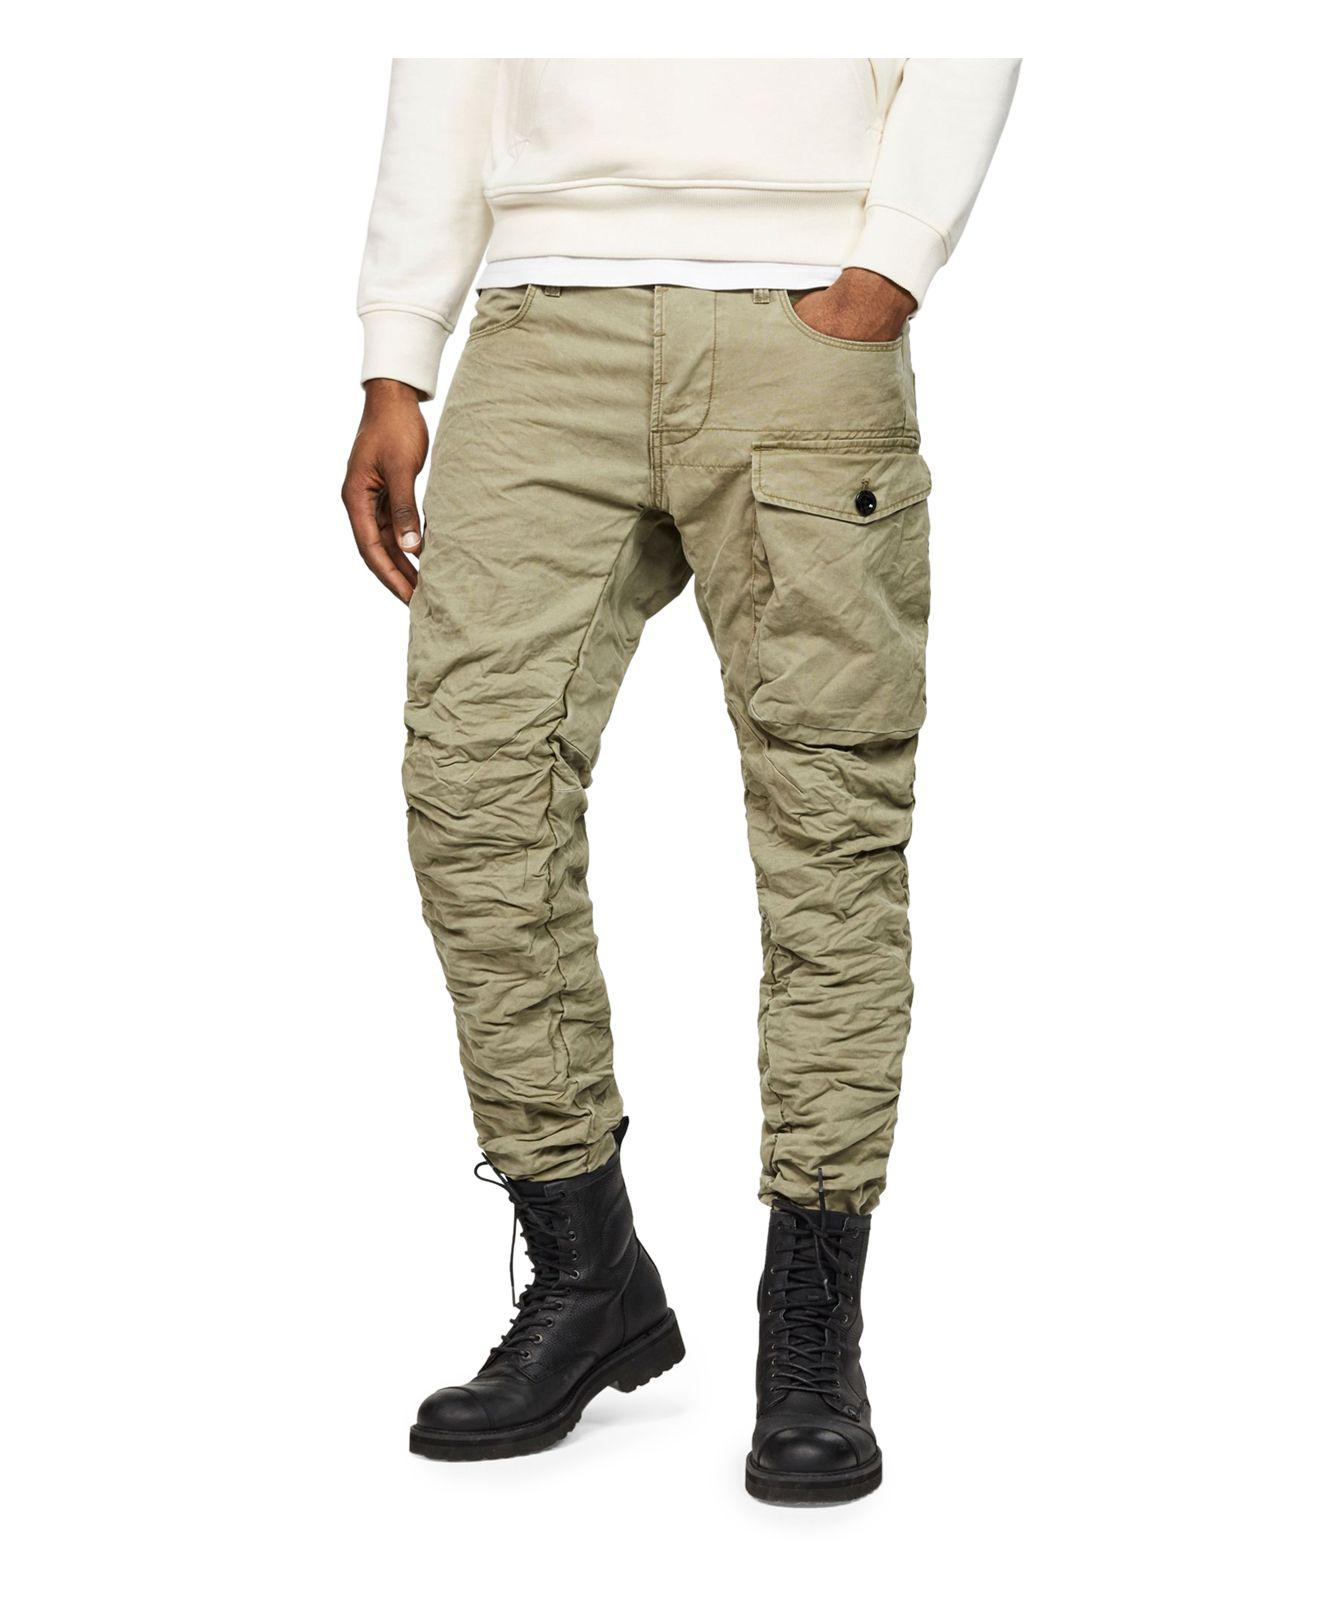 G-Star RAW. Men's Green Tendric 3d Tapered Fit Cargo Pants